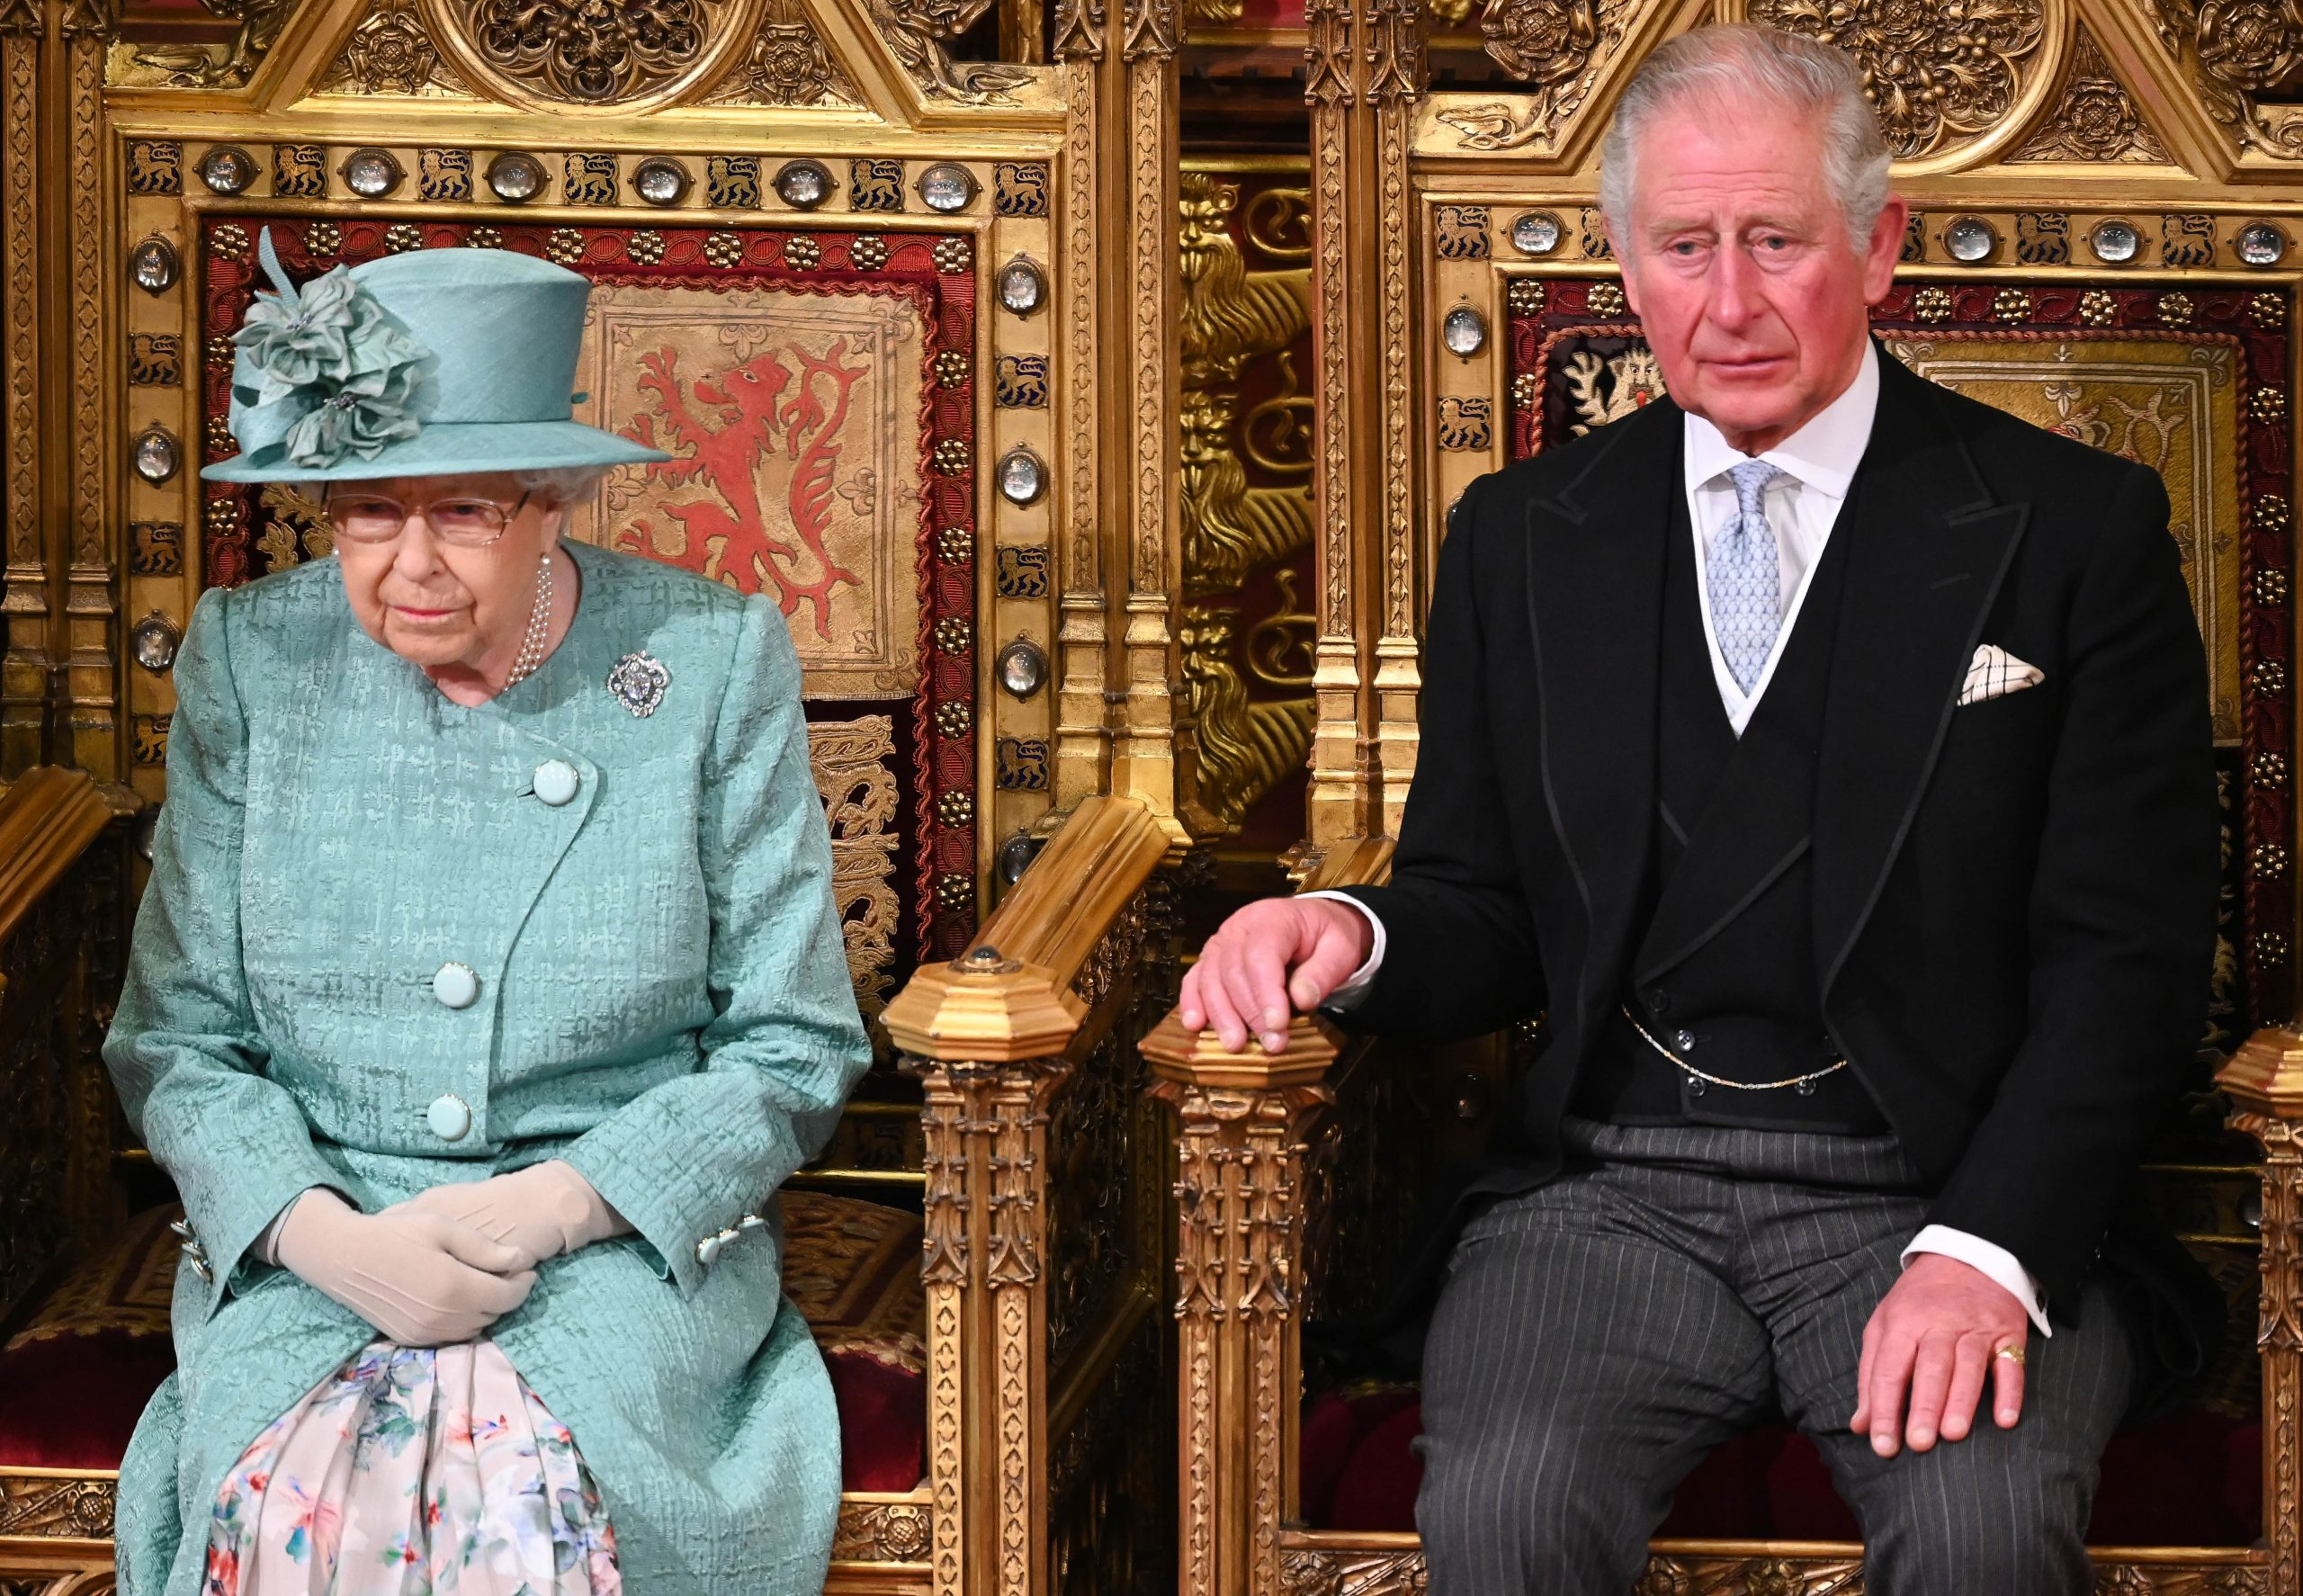 the queen divides with her dress at state opening